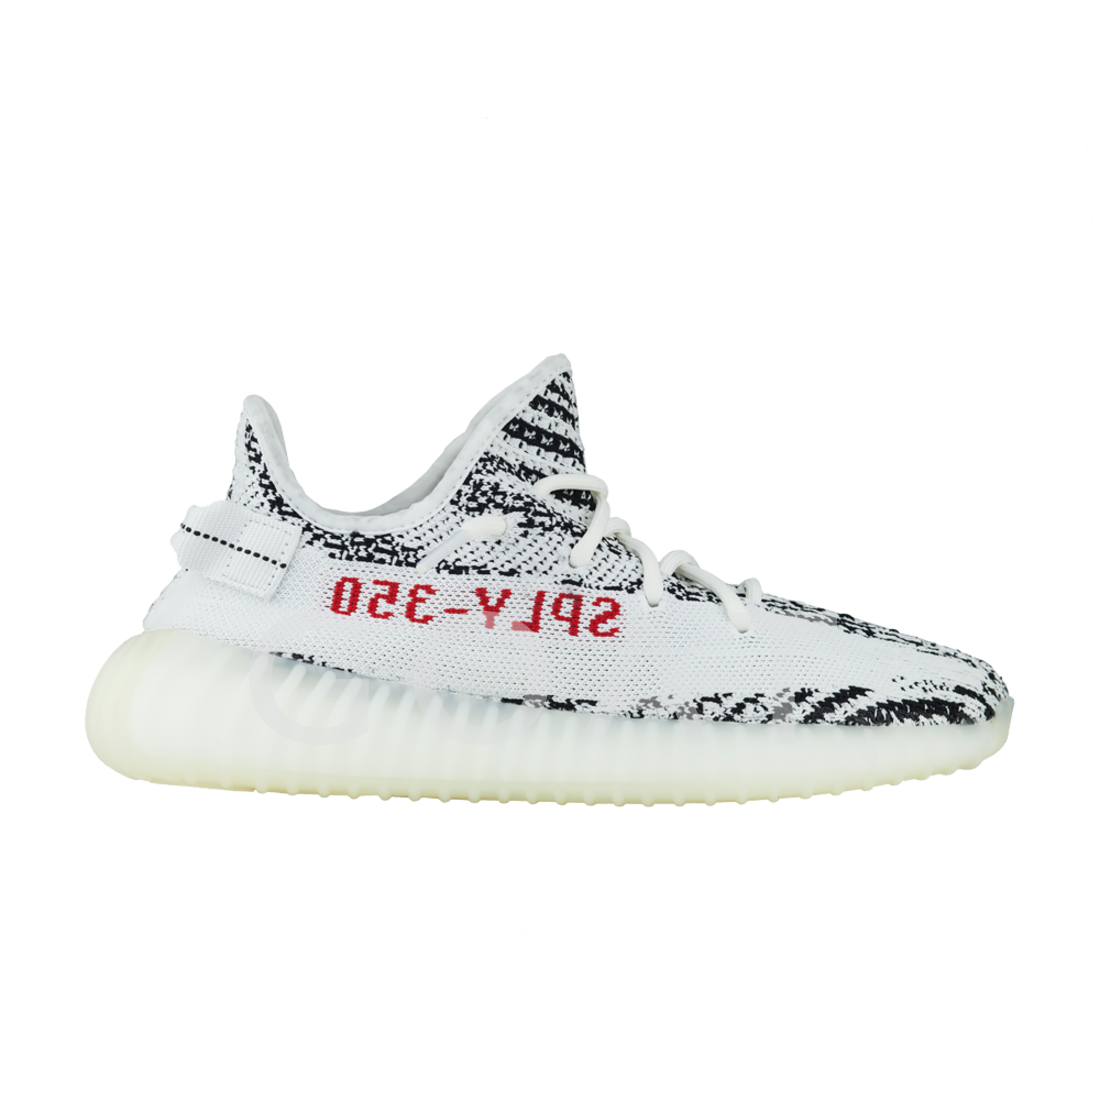 Cheap Yeezy boost 350 v2 : Kanye West Personal Shoe Collection